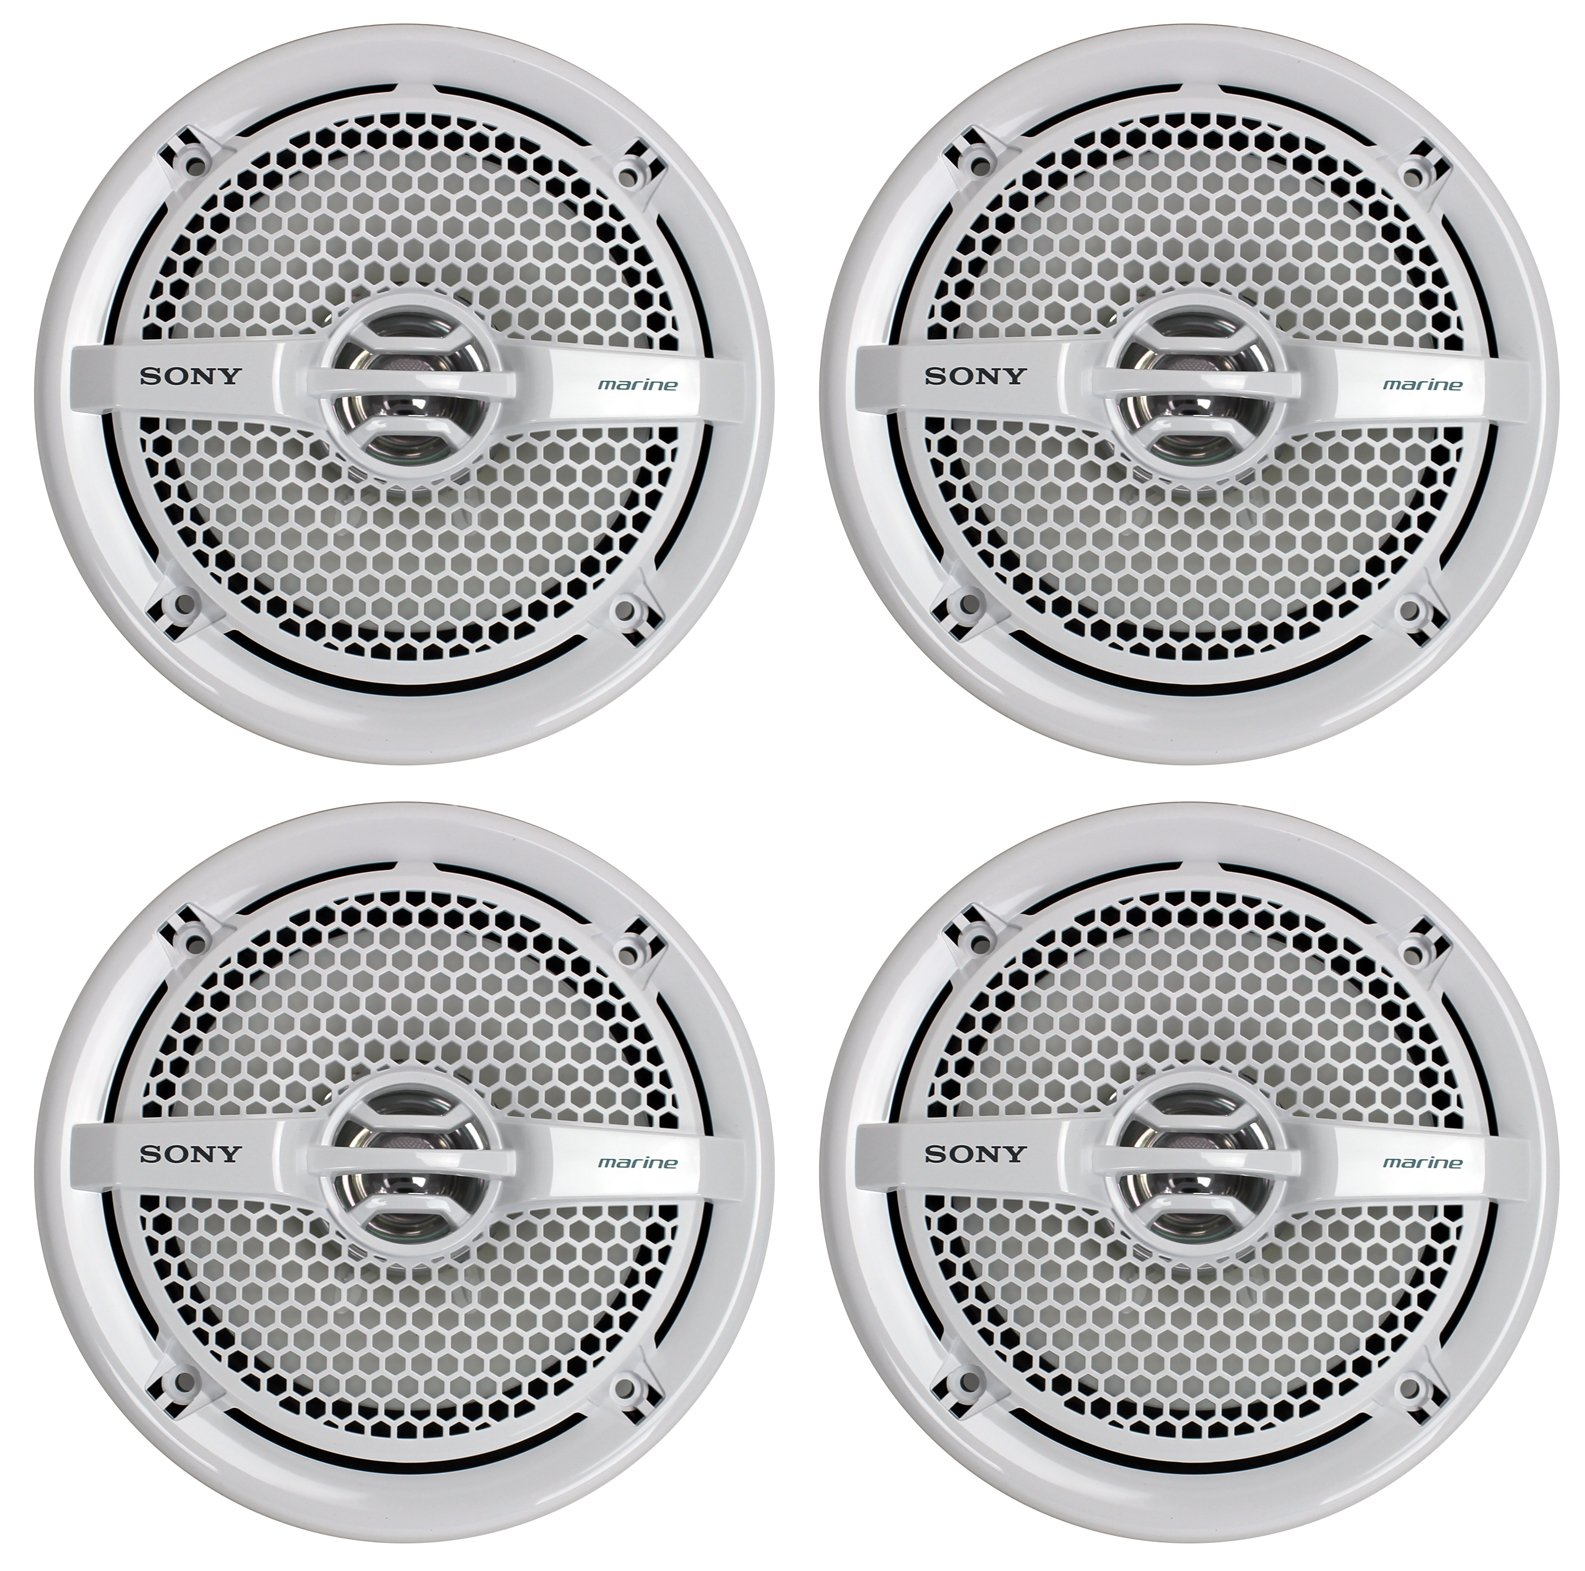 Sony 4 XS-MP1611 6.5'' 280 Watt Dual Cone Marine Speakers Stereo White XSMP1611 by Sony